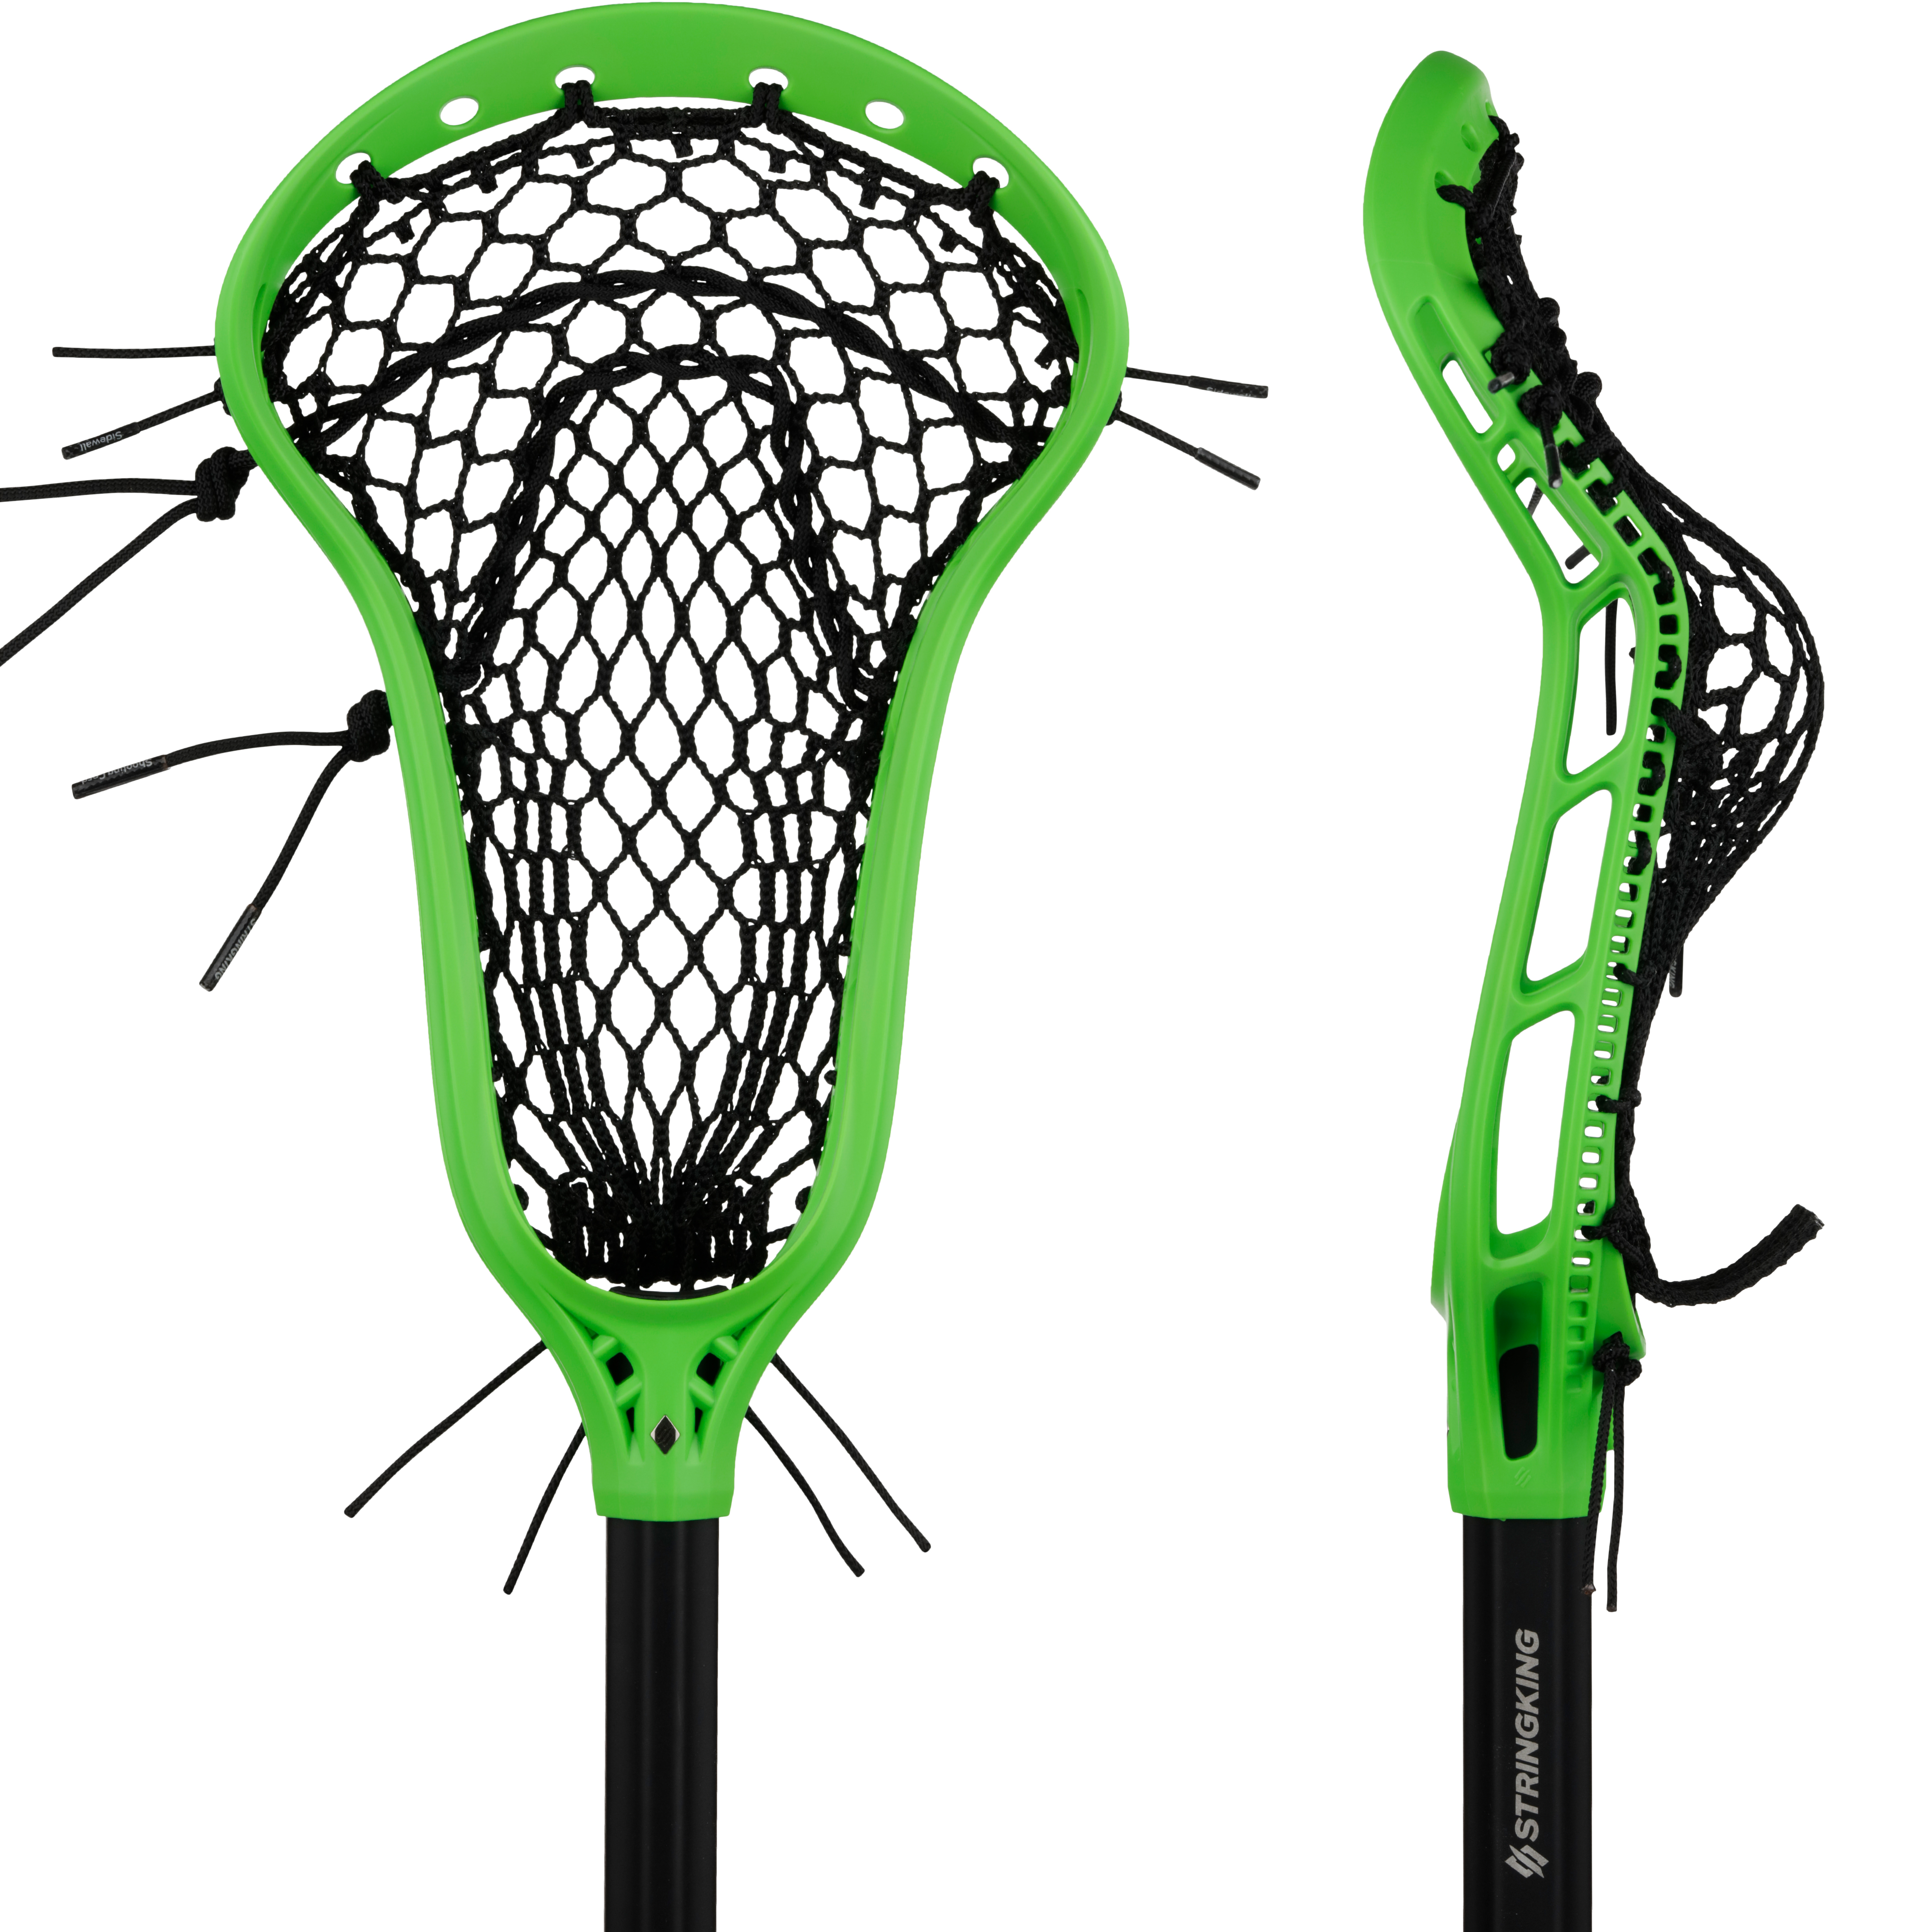 StringKing Women's Lacrosse Mark 2 Midfield Headstrong Product Image Front Sidewall View